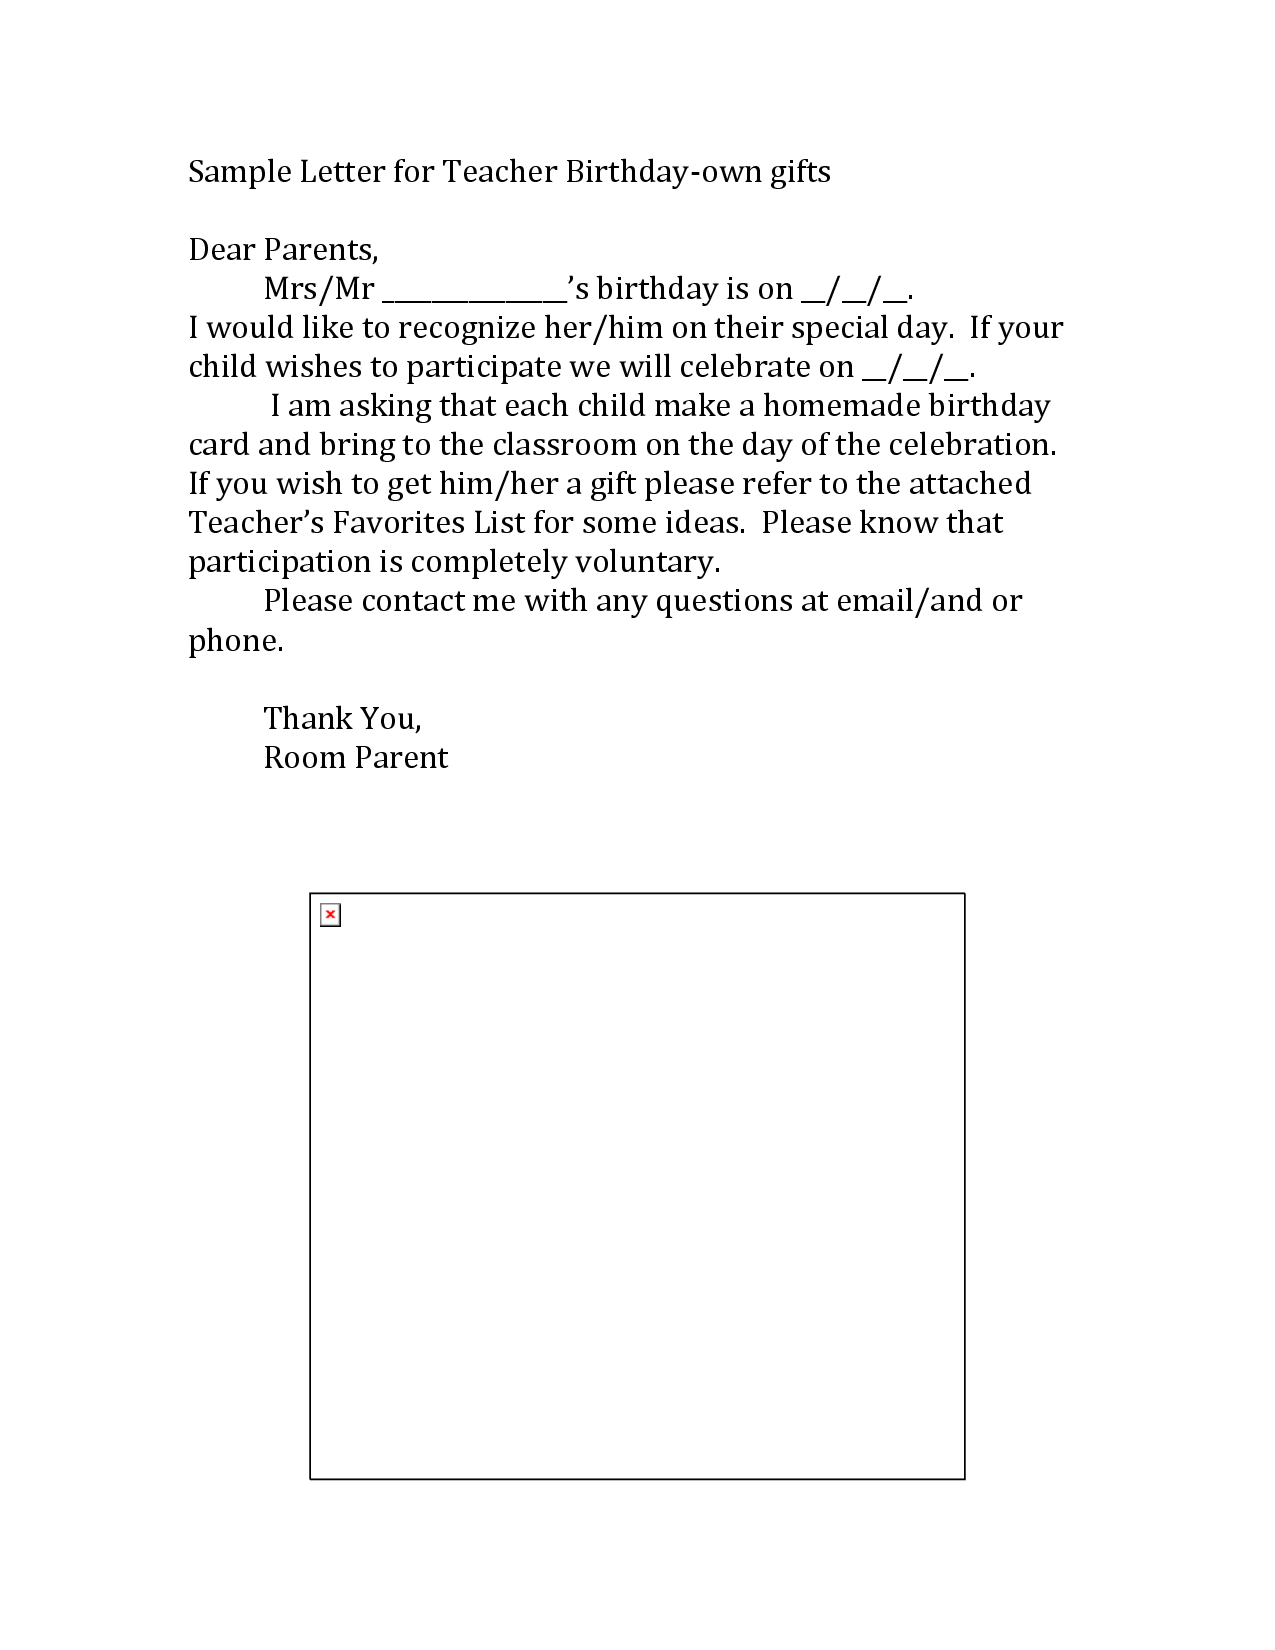 teacher templates letters parents sample letter for teacher teacher templates letters parents sample letter for teacher birthday collecting for a gift